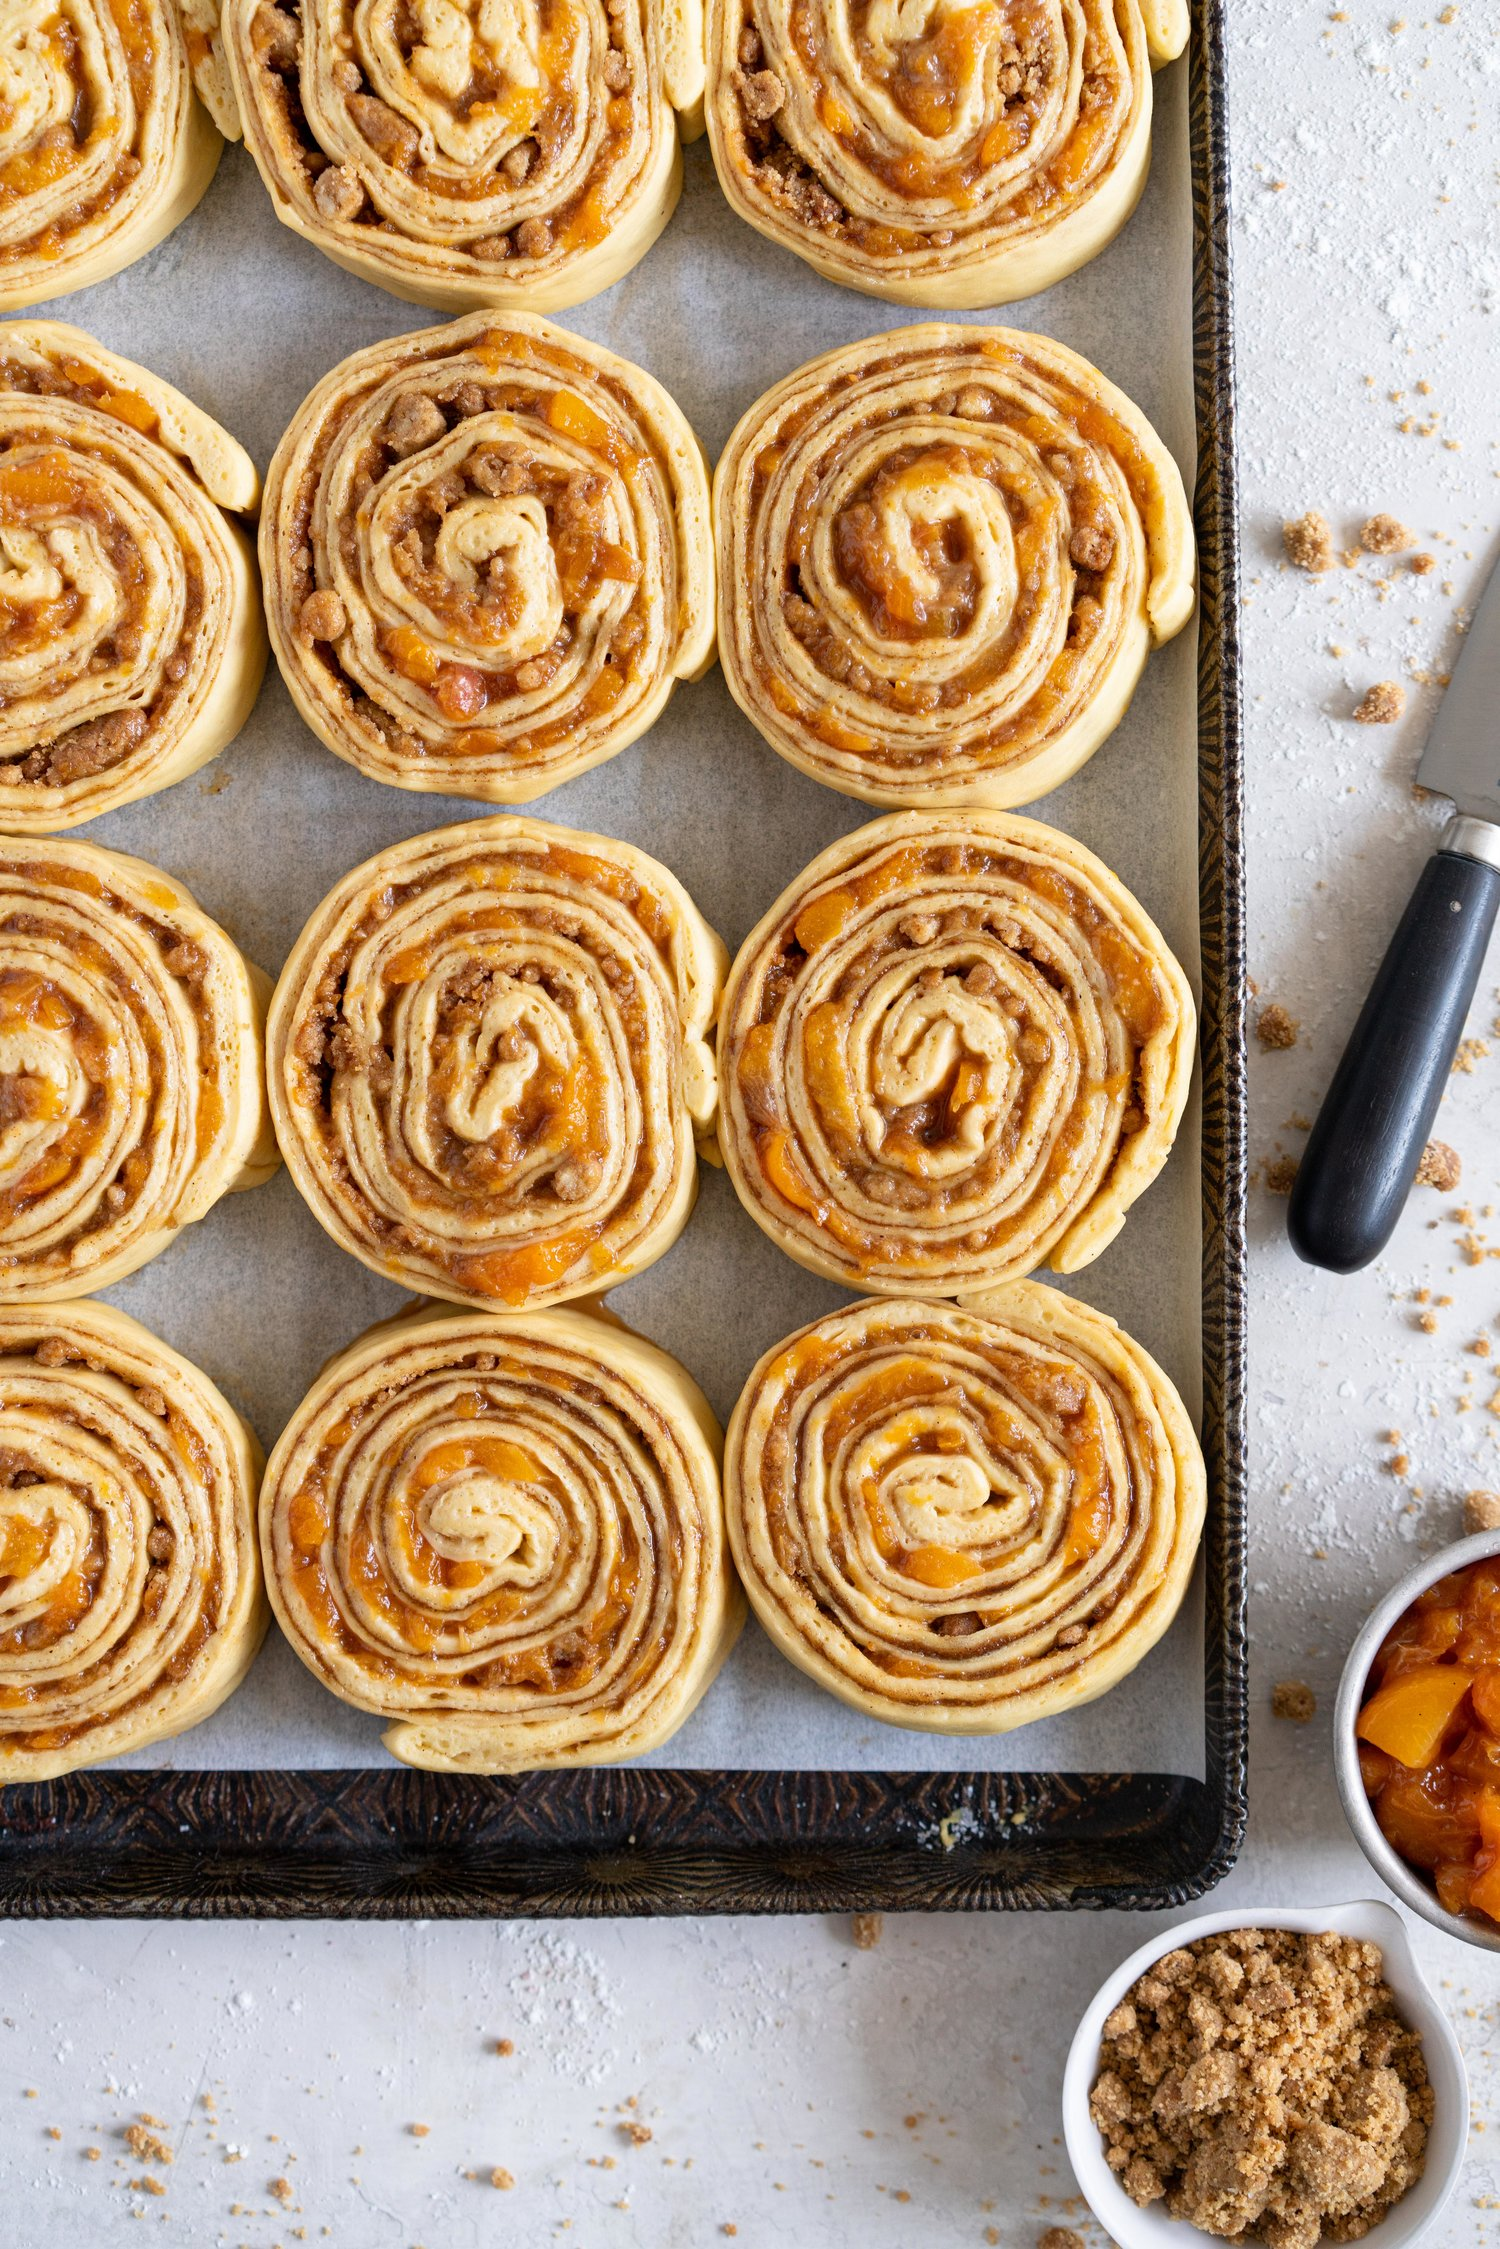 Laminated Brioche Cinnamon Buns with Peach Compote and Brown Butter Streusel